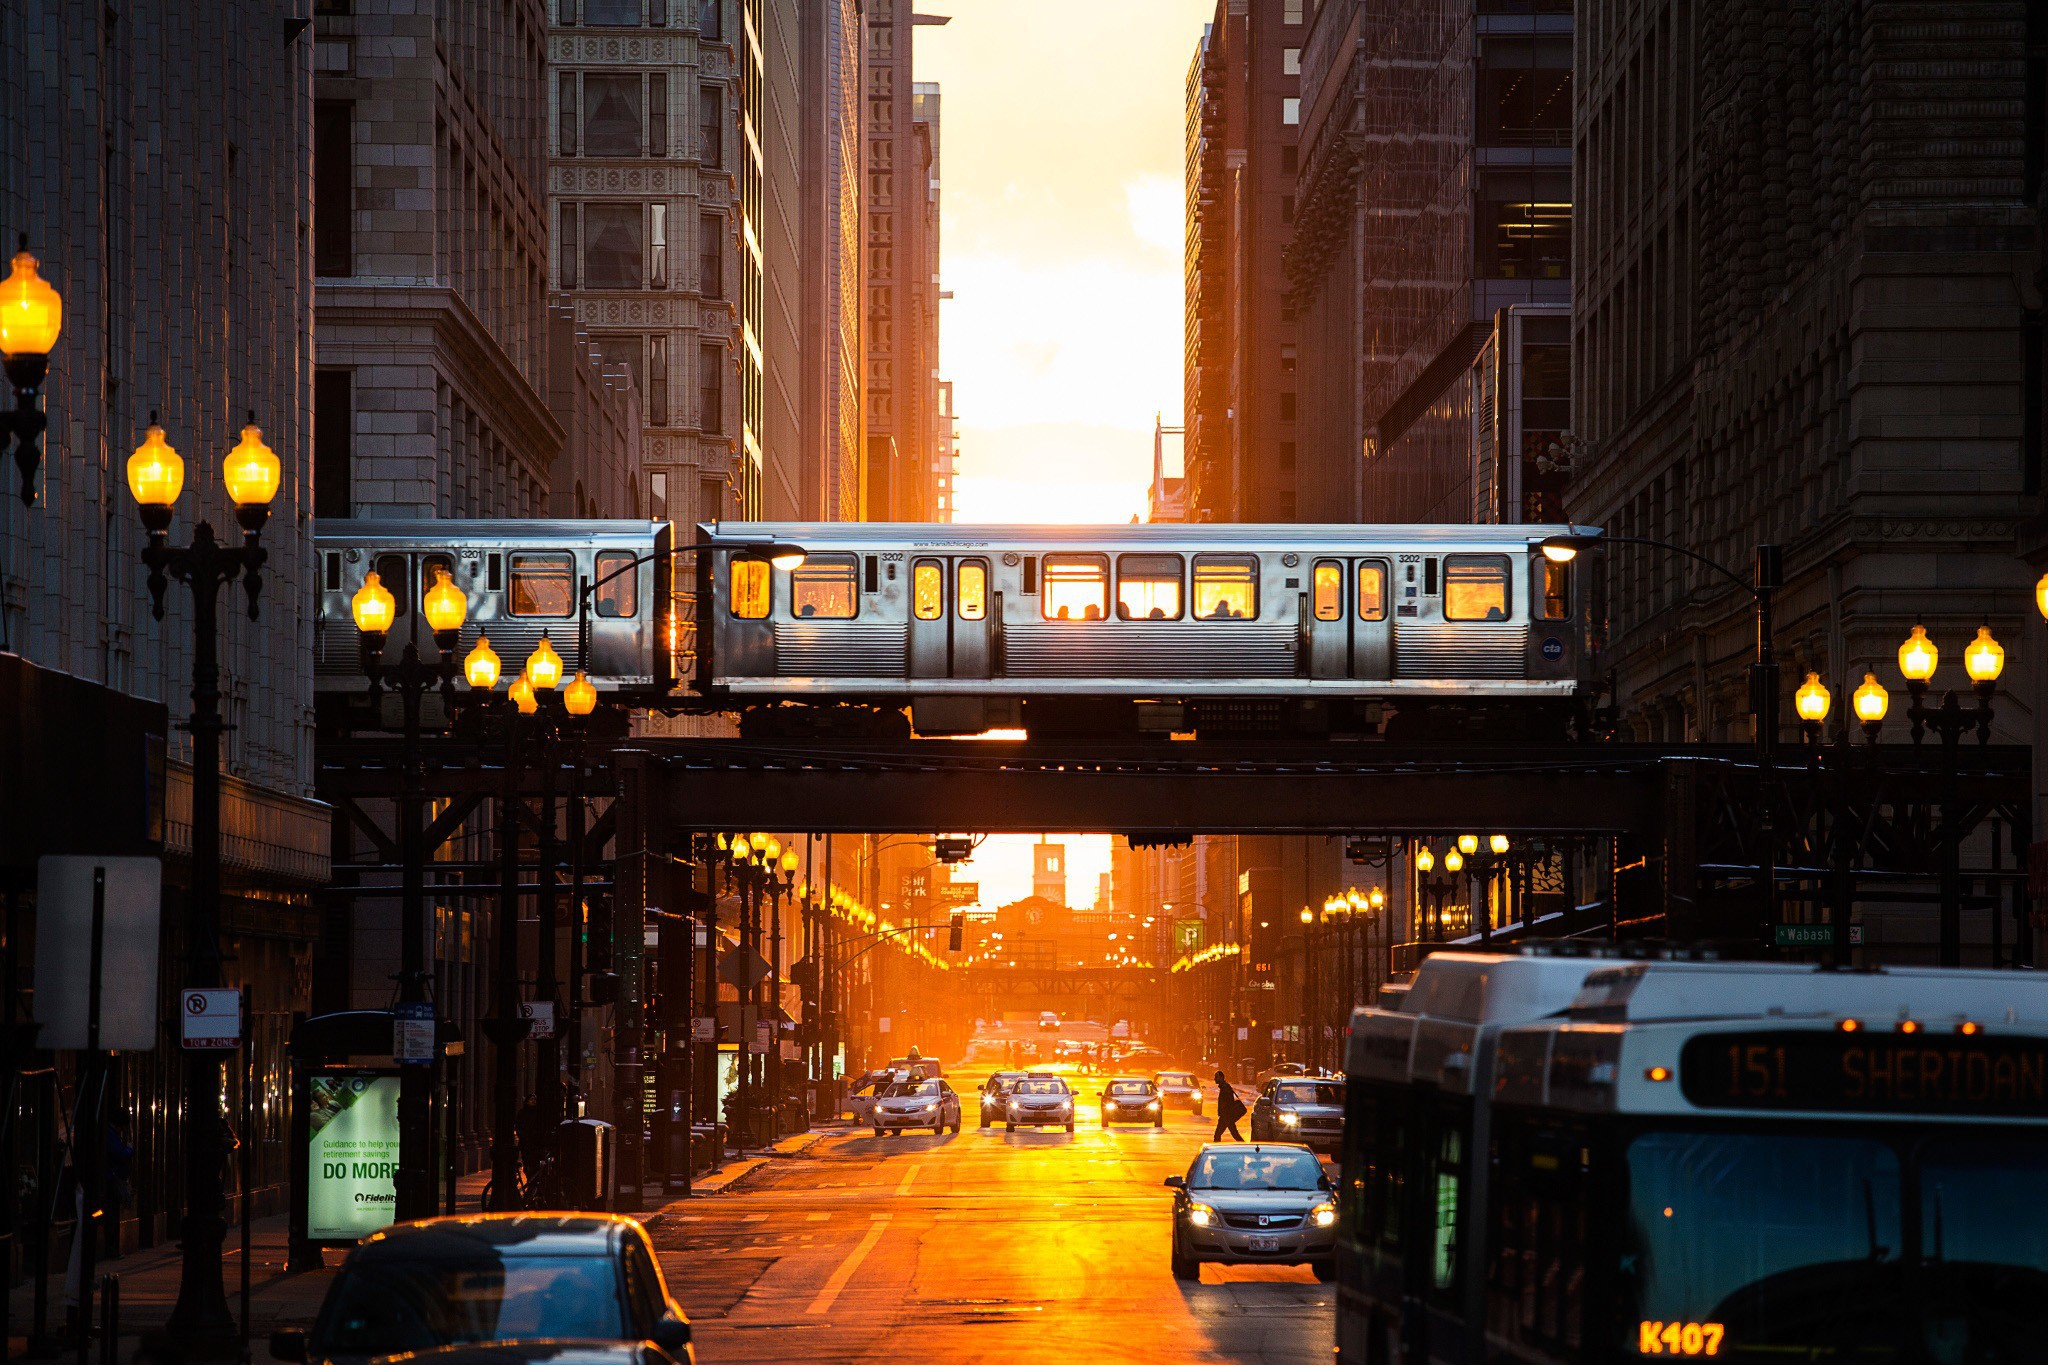 train crosses the street in Chicago wallpapers and images   wallpapers 2048x1365